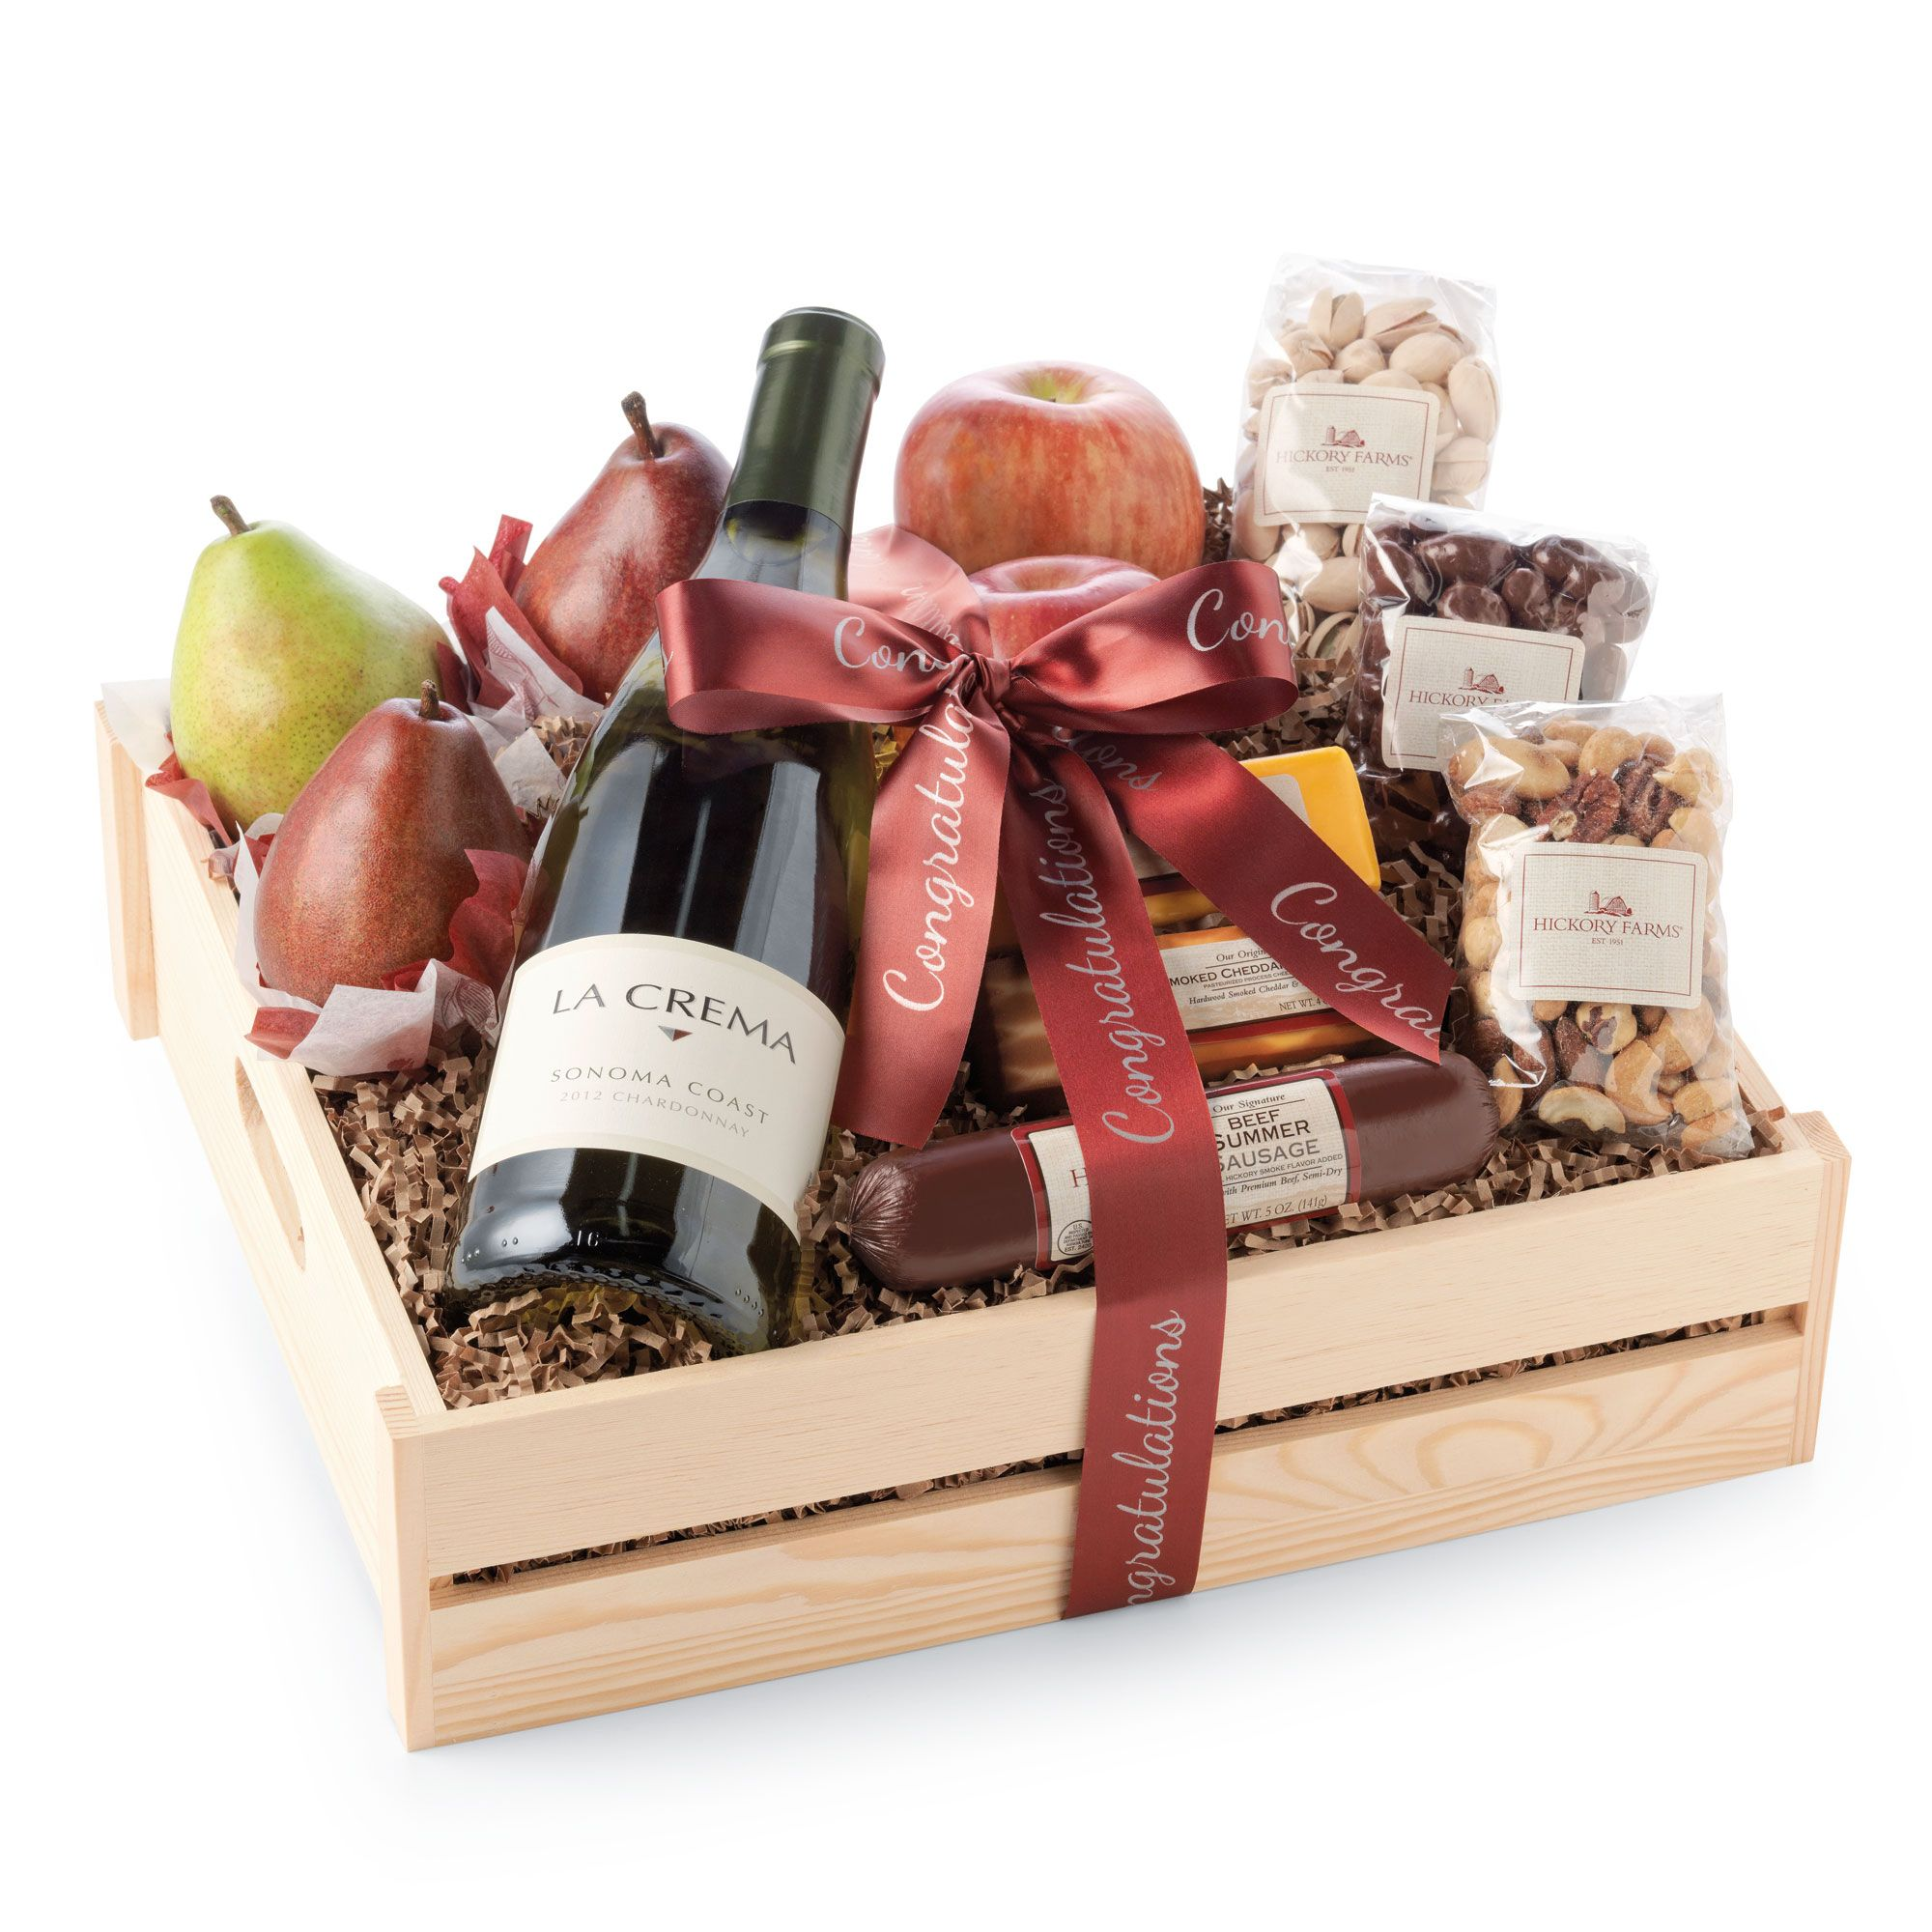 Toast The Traditions Gift Best Gift Baskets Wine Gift Baskets Wedding Gift Baskets